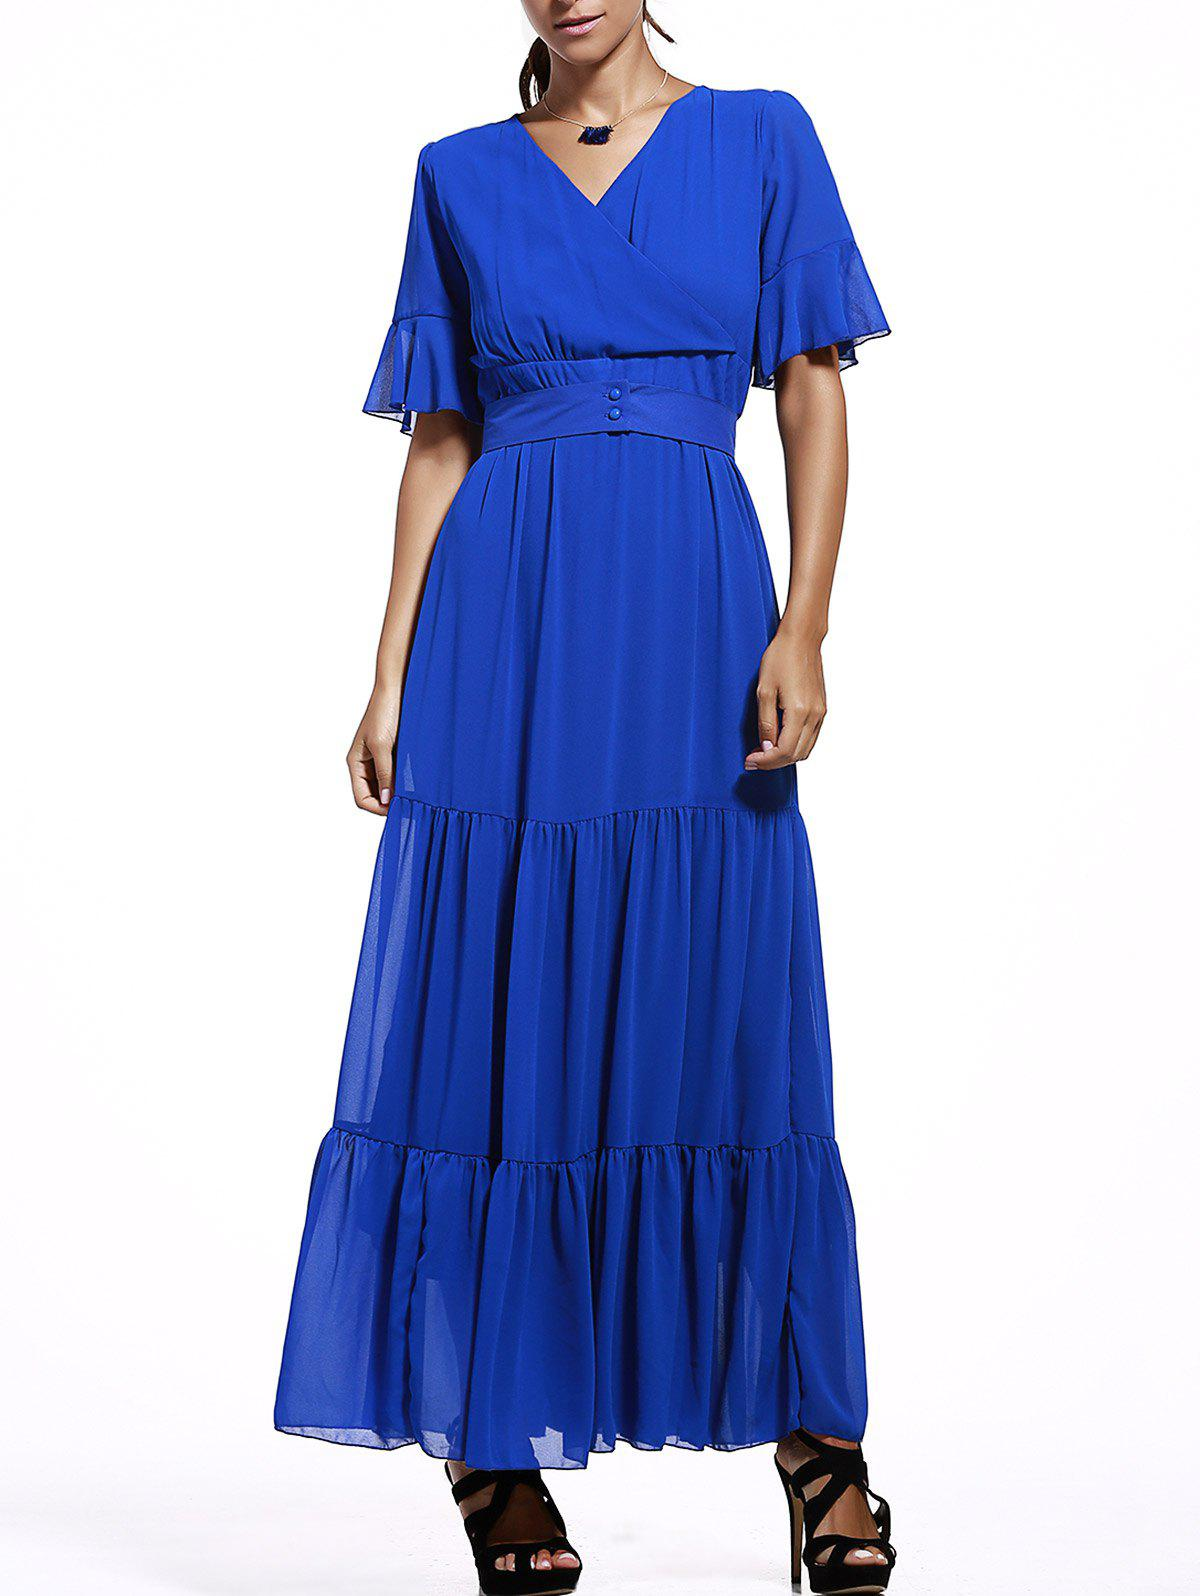 V-Neck Ruffle Maxi Chiffon Dress - BLUE 5XL